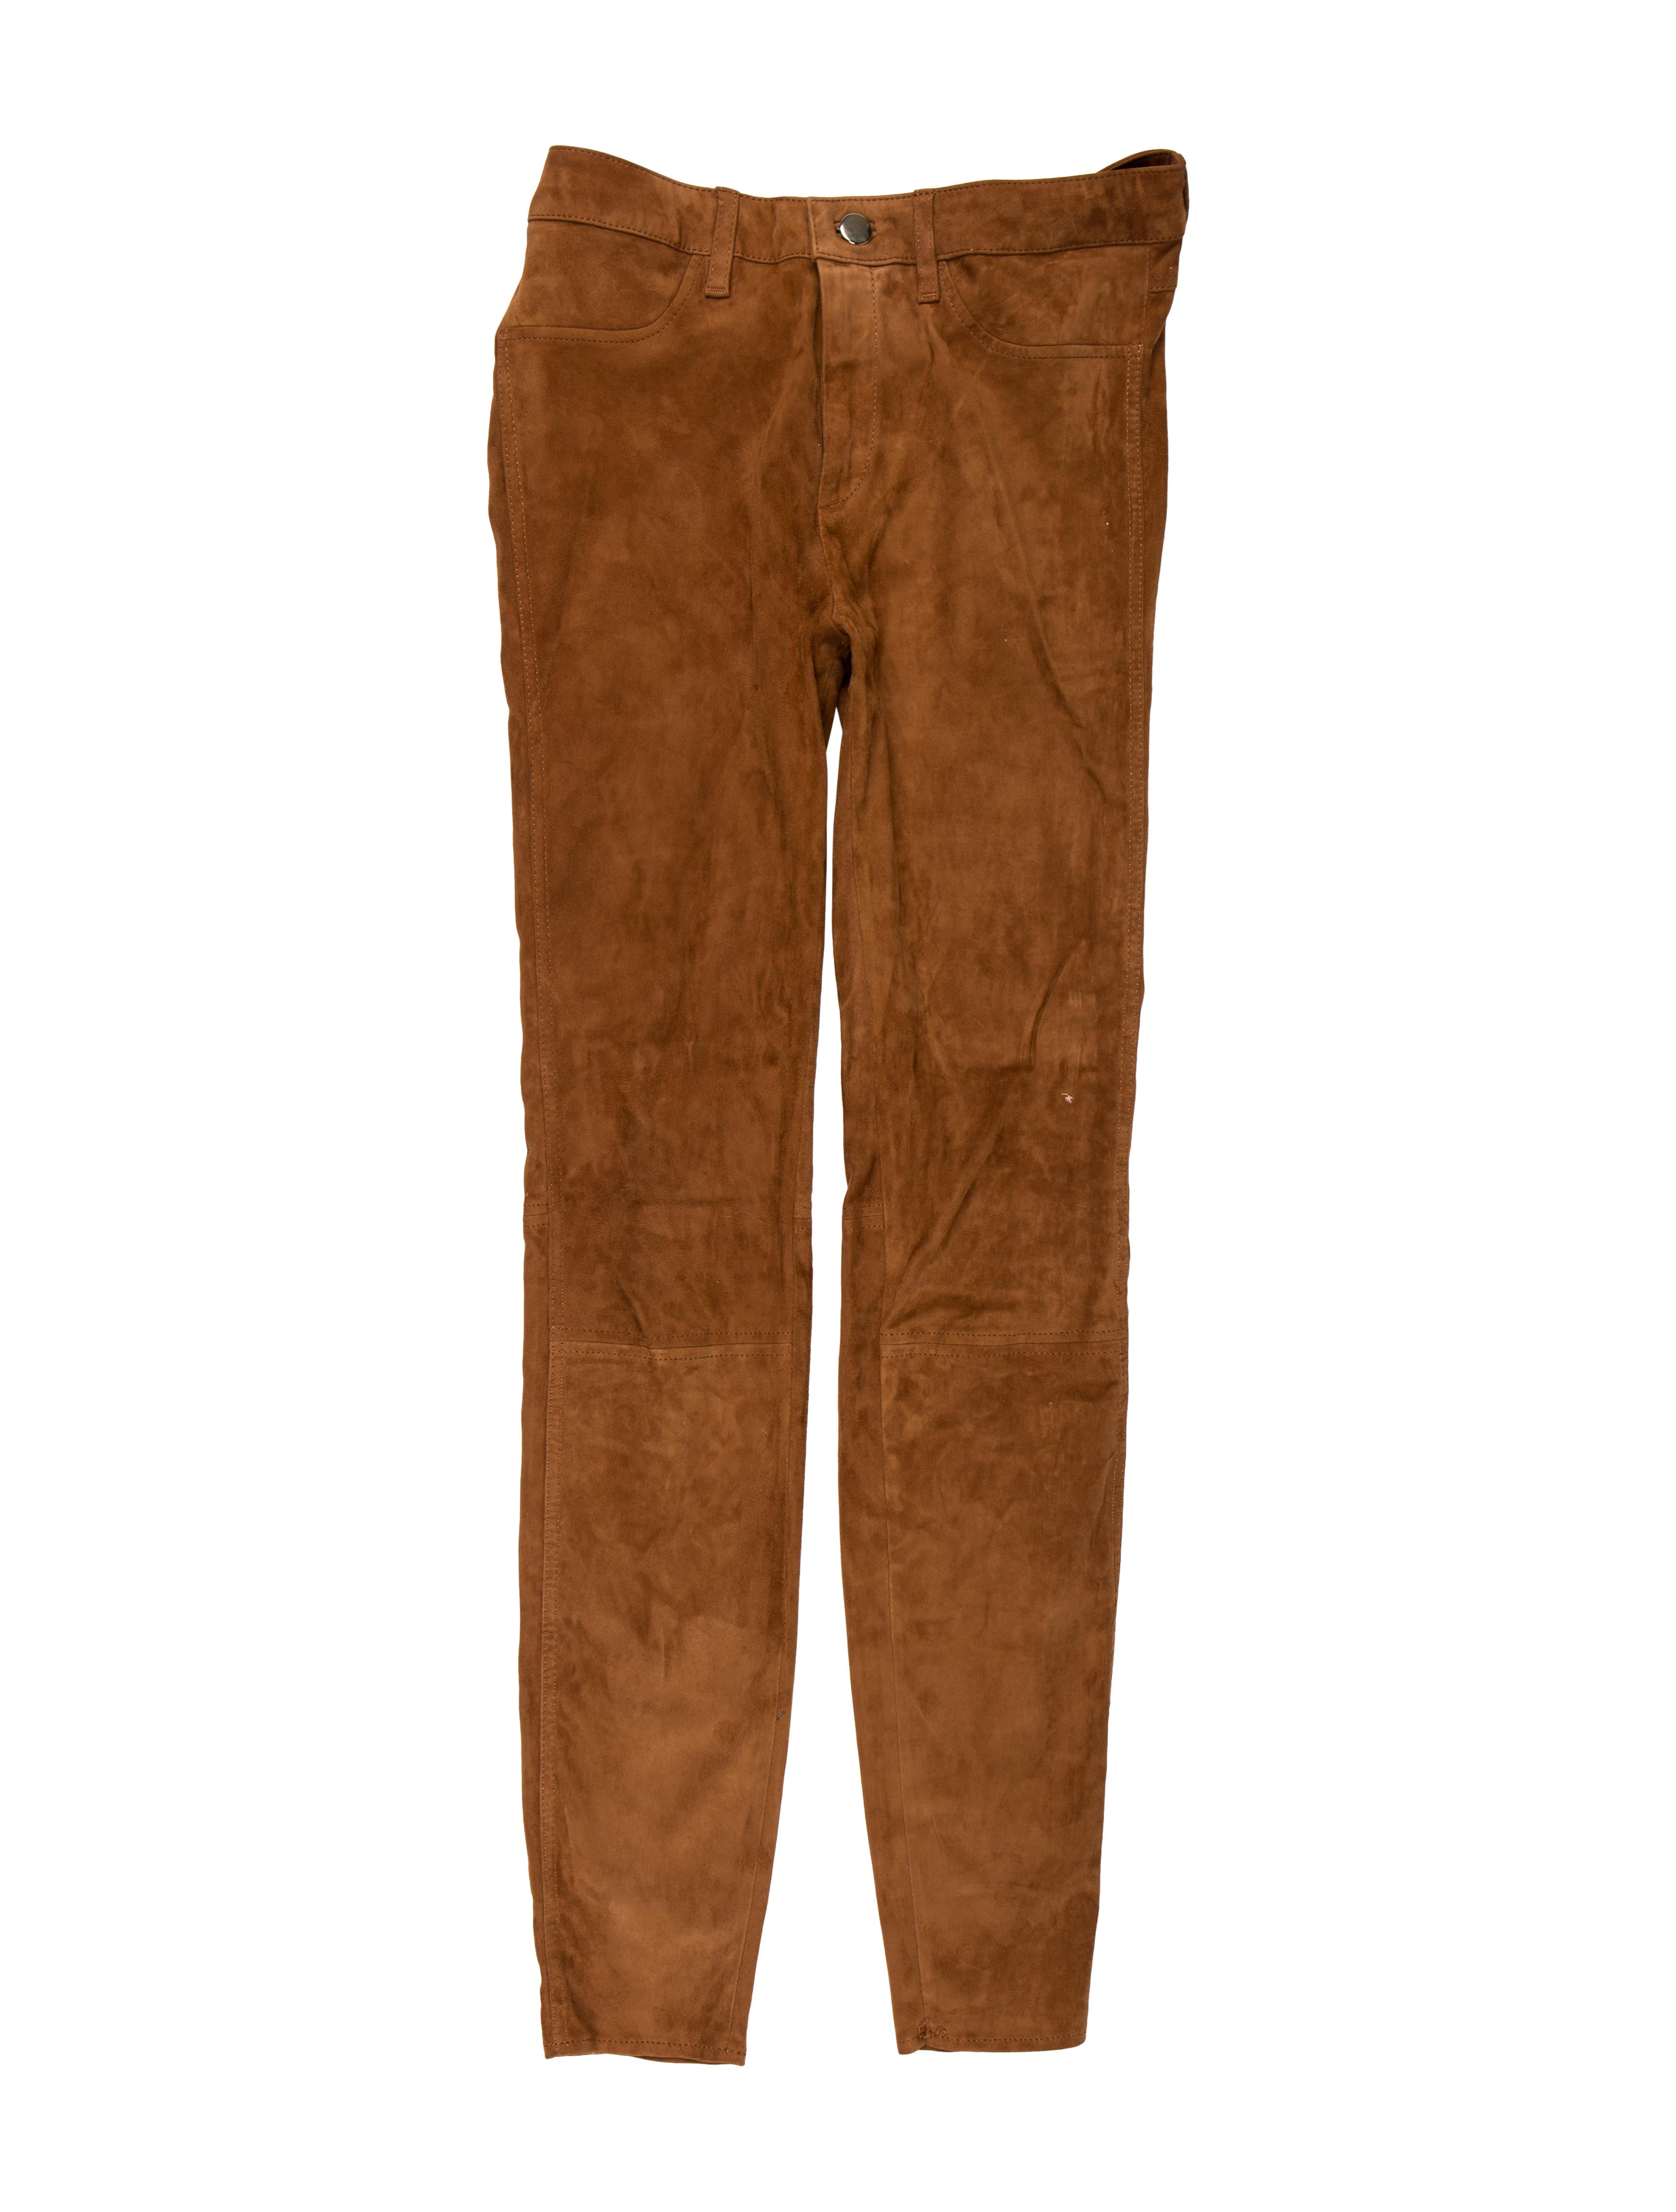 bb8ebcb96f8 Massimo Dutti Suede Mid-Rise Skinny Pants - Clothing - WDTTI20183 ...